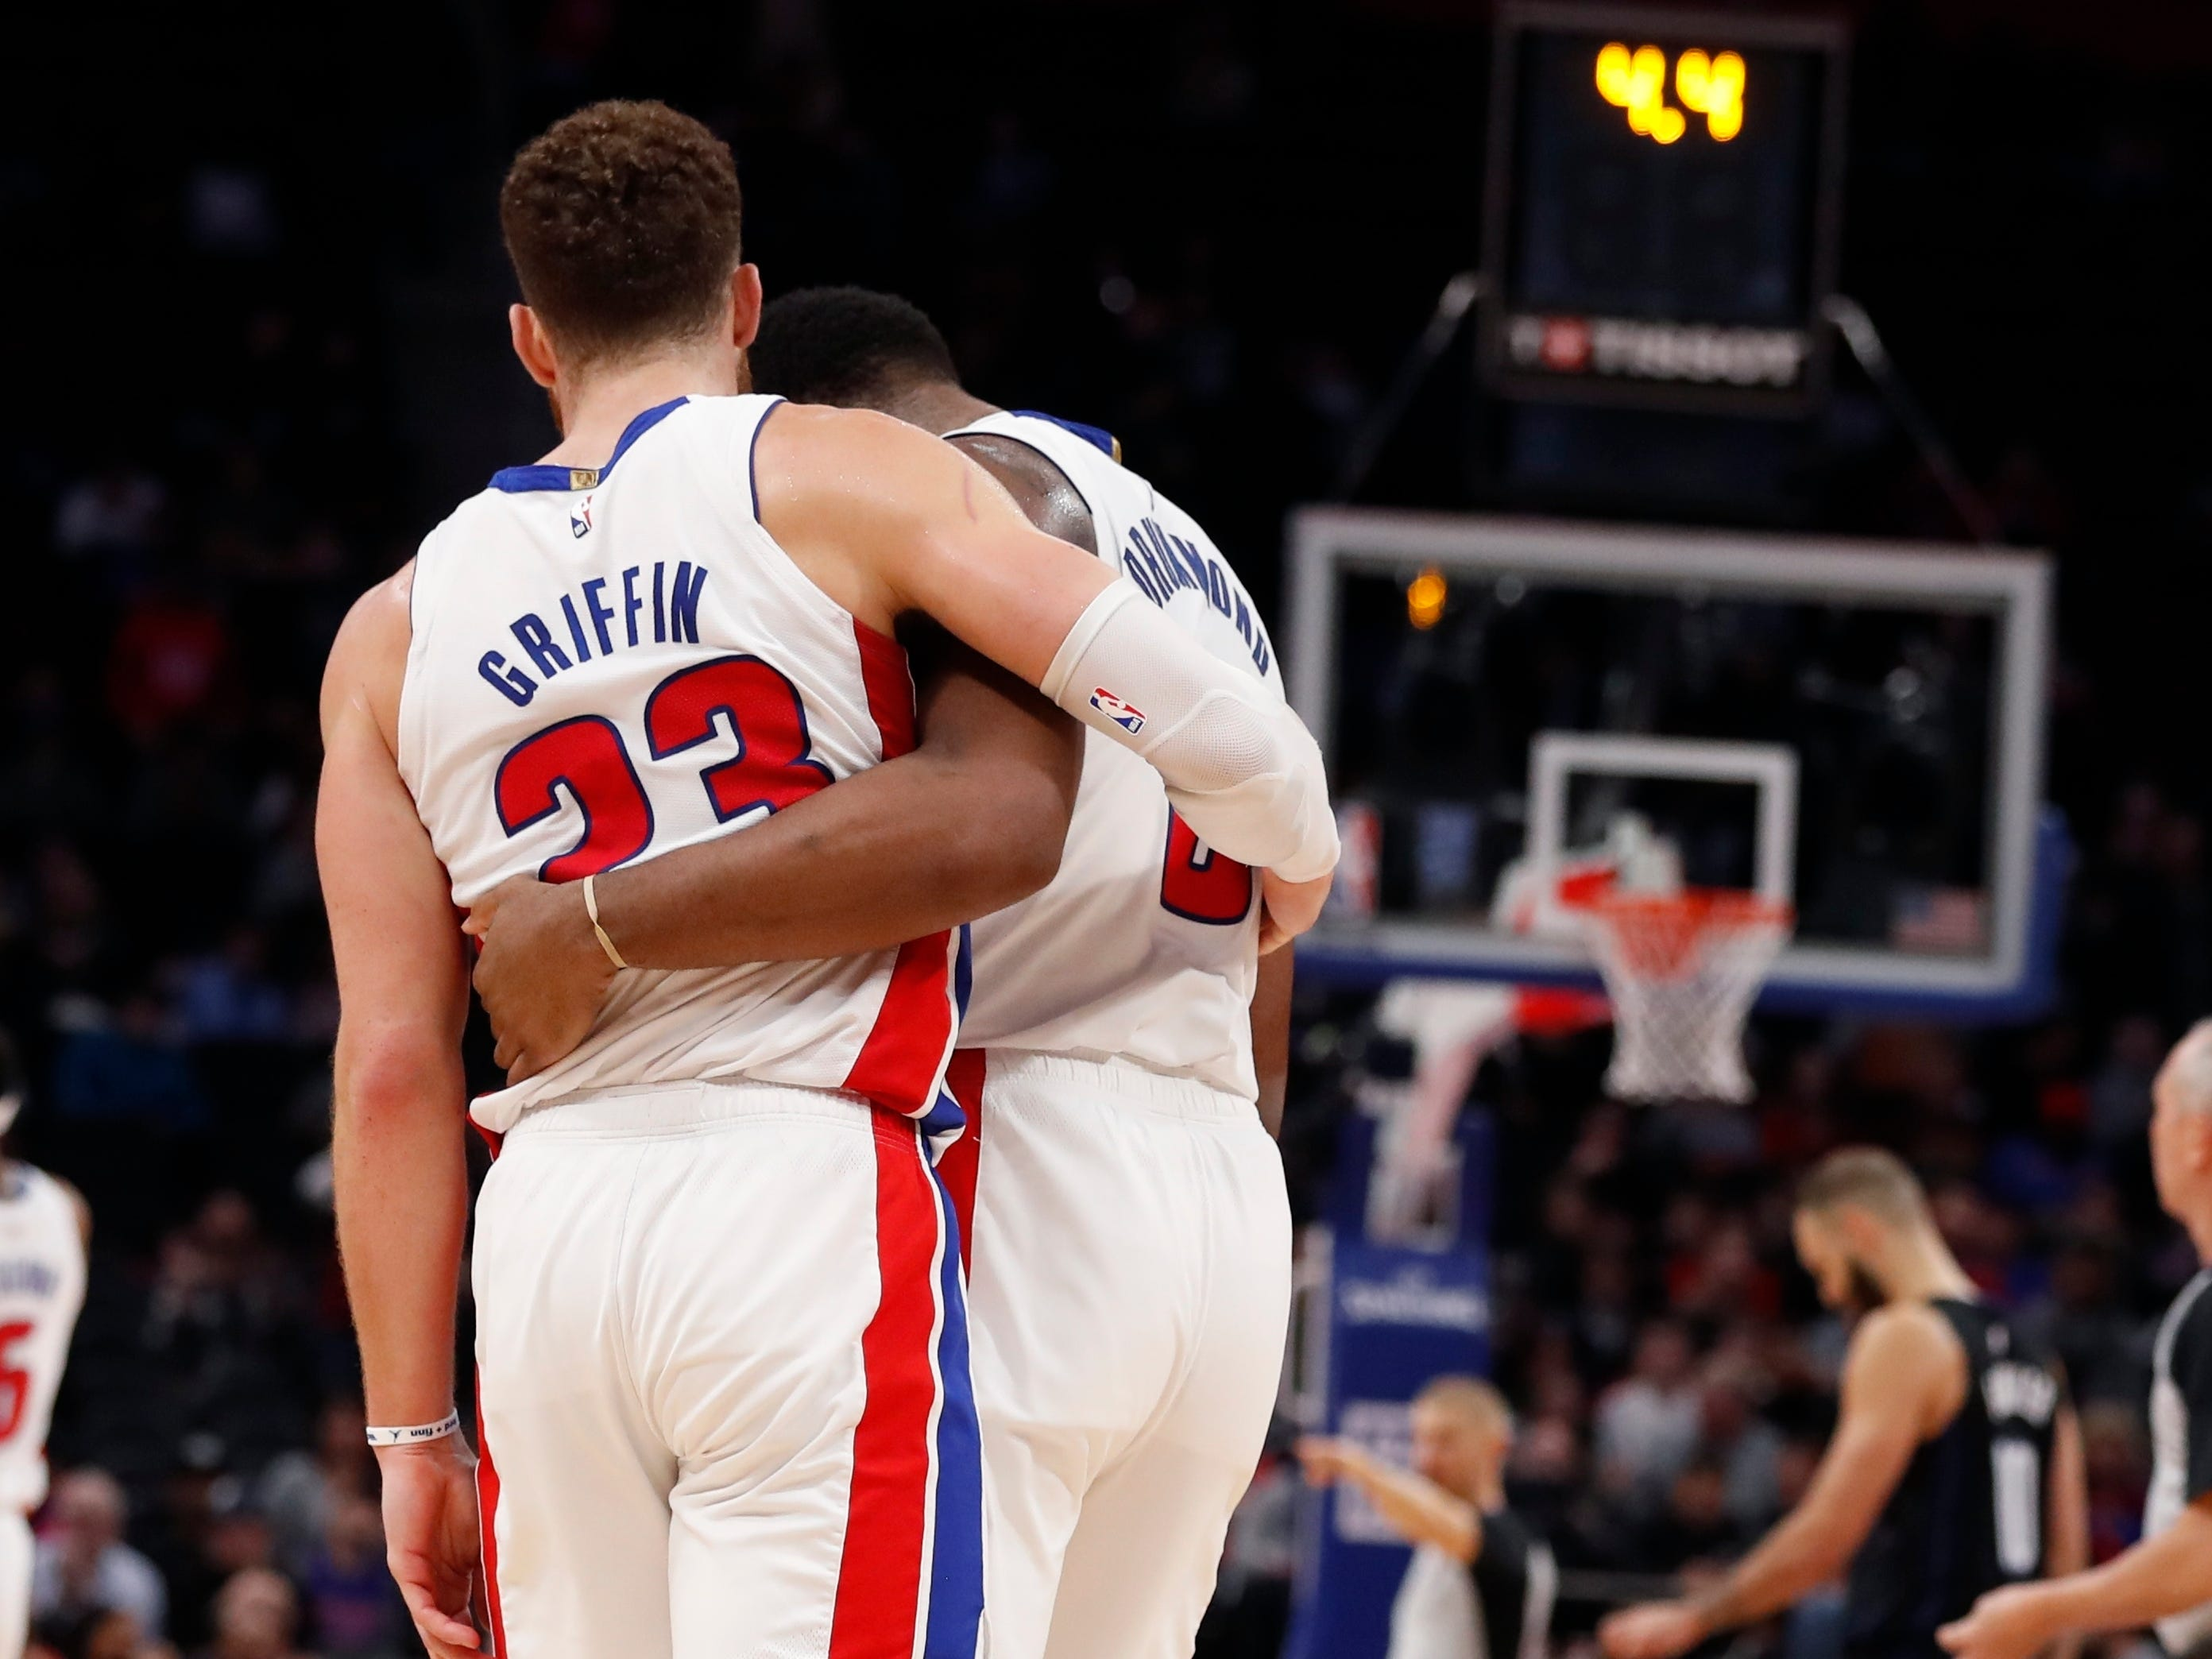 Detroit Pistons forward Blake Griffin (23) hugs center Andre Drummond (0) as the clock winds down in overtime as the Pistons beat the Orlando Magic, 120-115, at Little Caesars Arena in Detroit, Wednesday night, January 16, 2019.